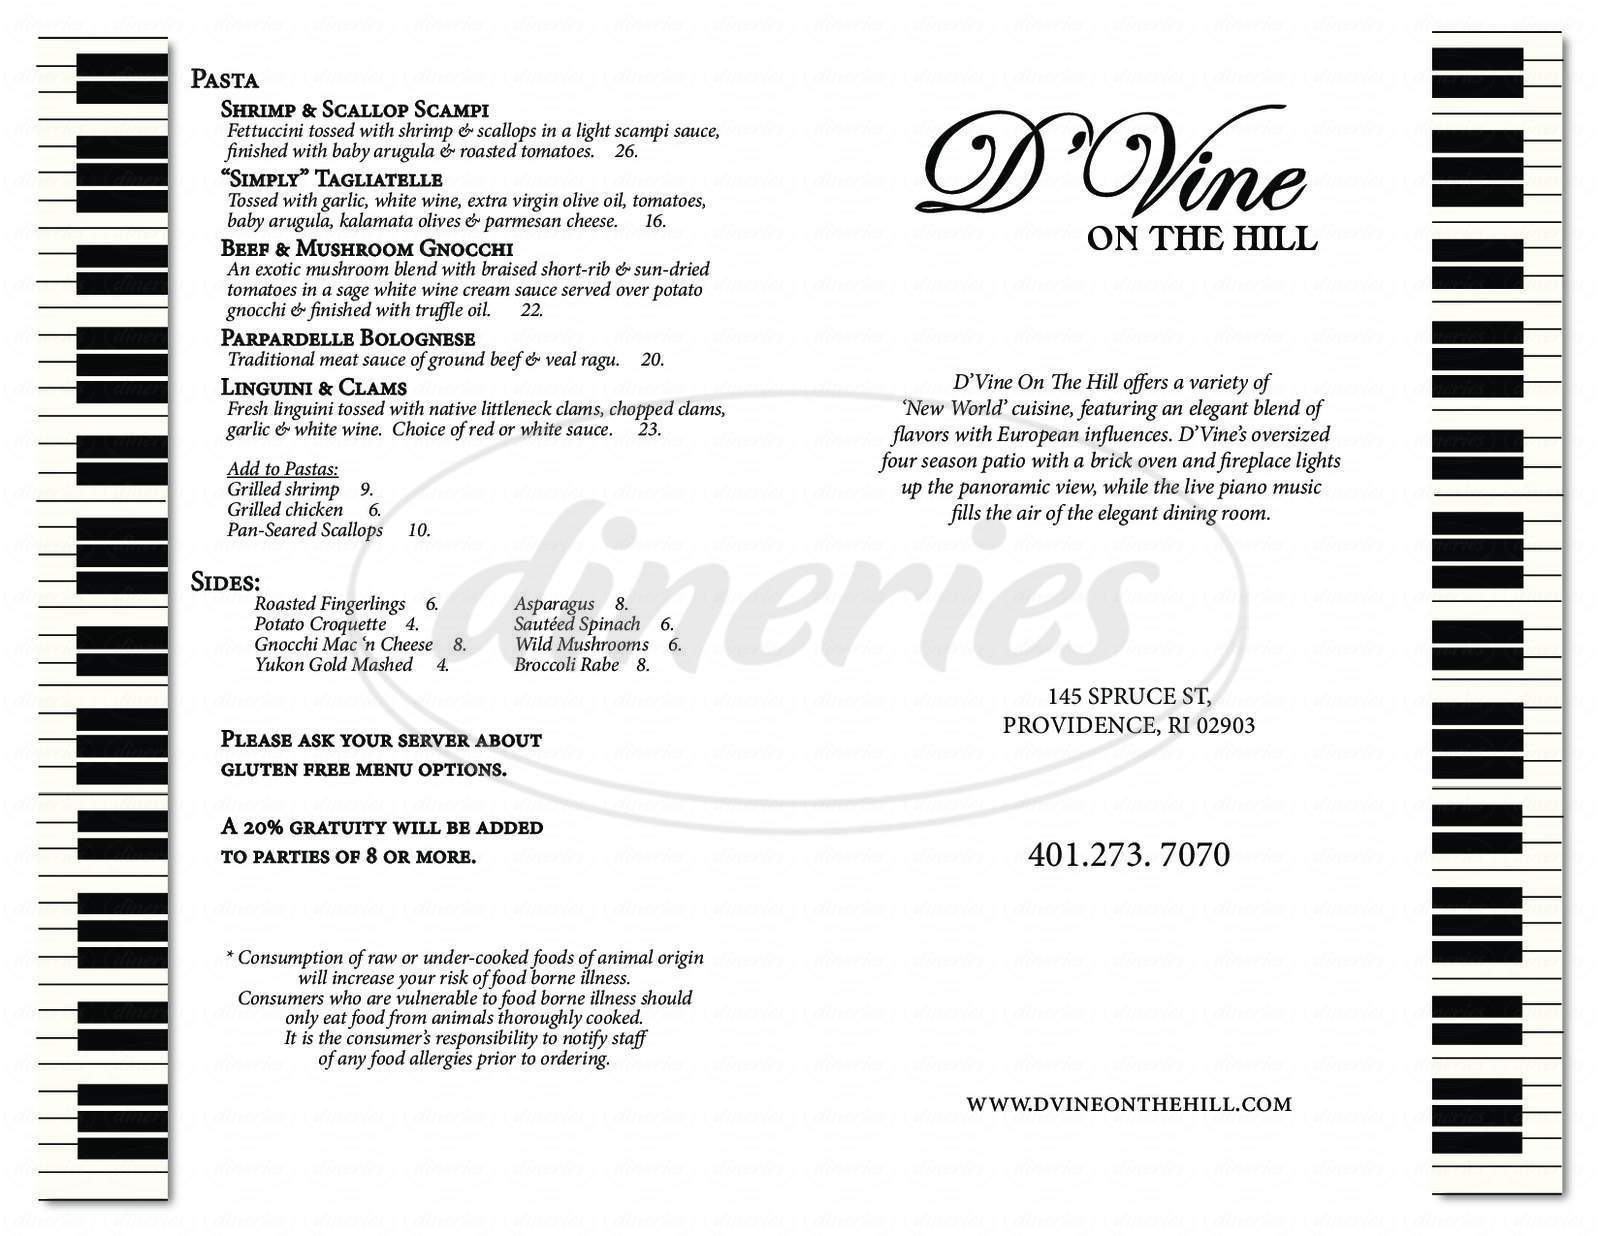 menu for D'Vine On The Hill